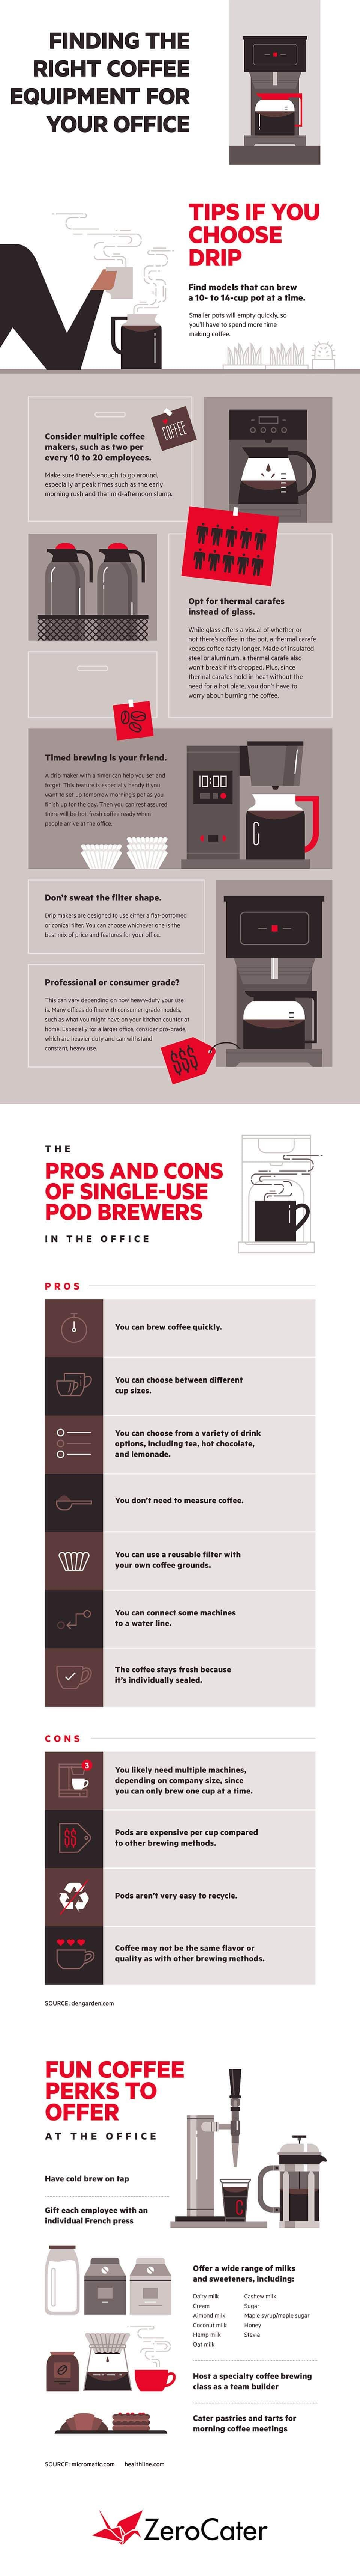 Finding the Right Coffee Equipment for Your Office #infographic